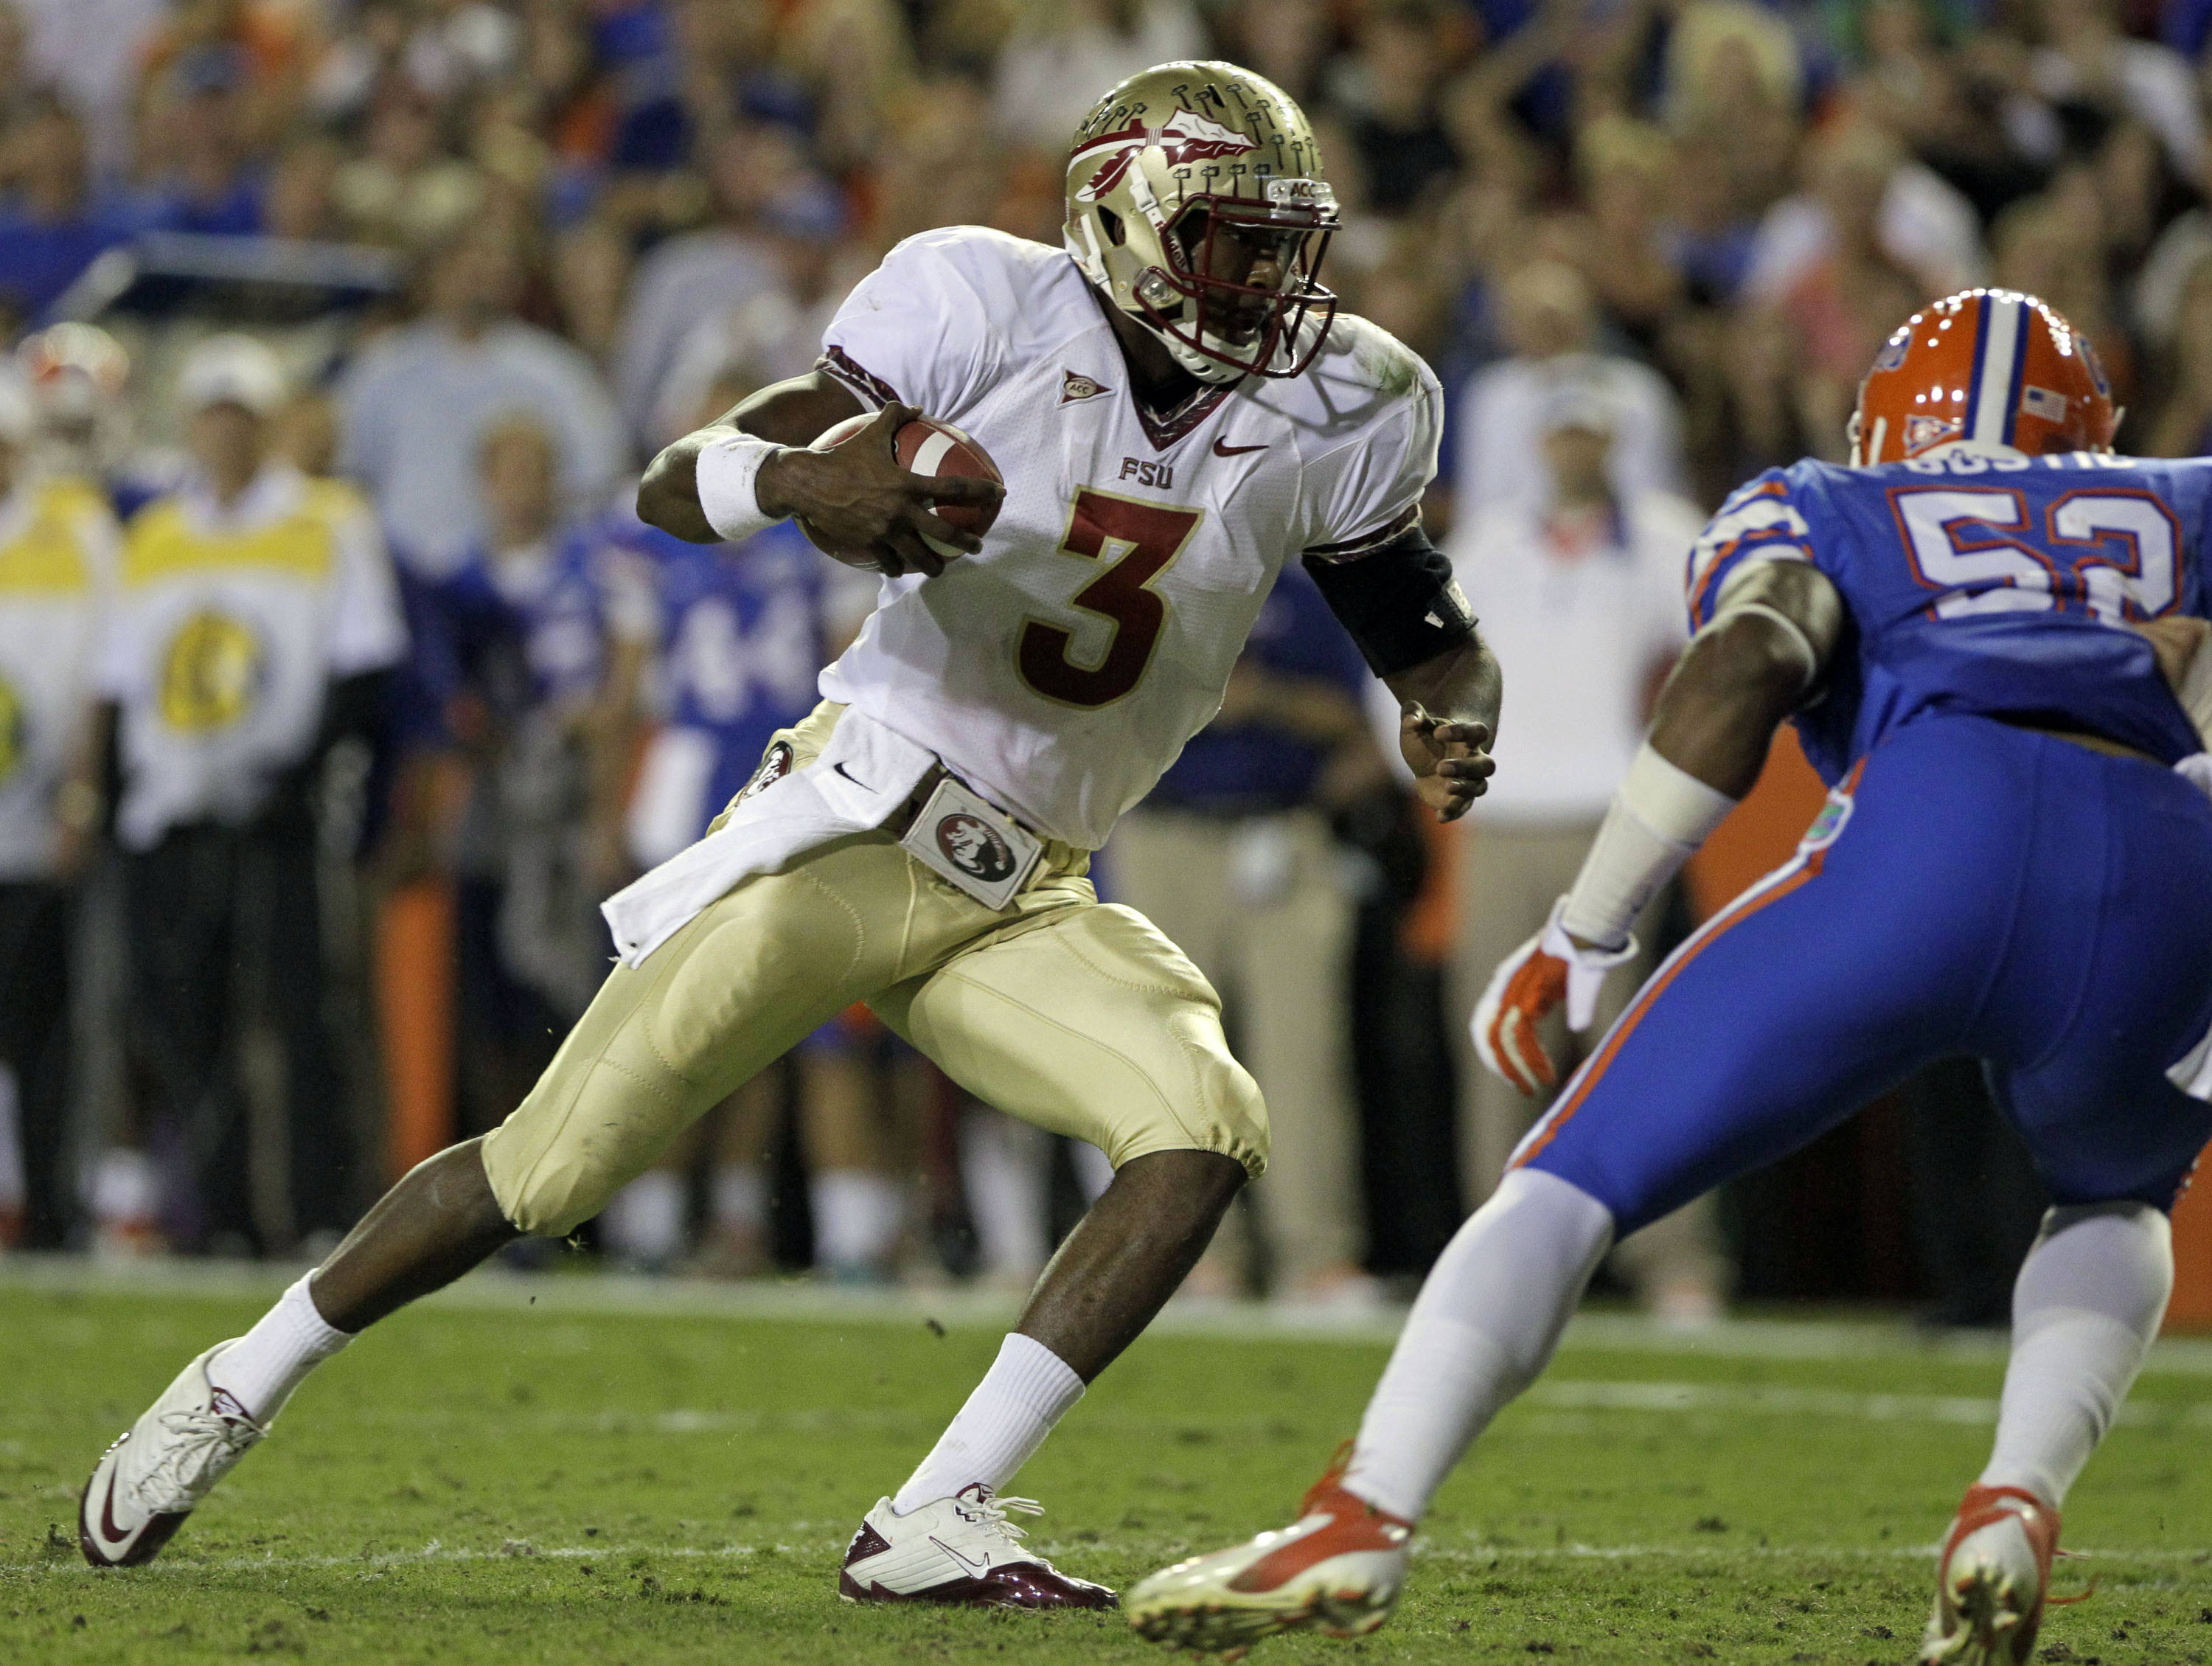 Florida State quarterback EJ Manuel (3) scrambles past Florida linebacker Jonathan Bostic (52) for a short gain during the first half of an NCAA college football game on Saturday, Nov. 26, 2011, in Gainesville, Fla. (AP Photo/John Raoux)